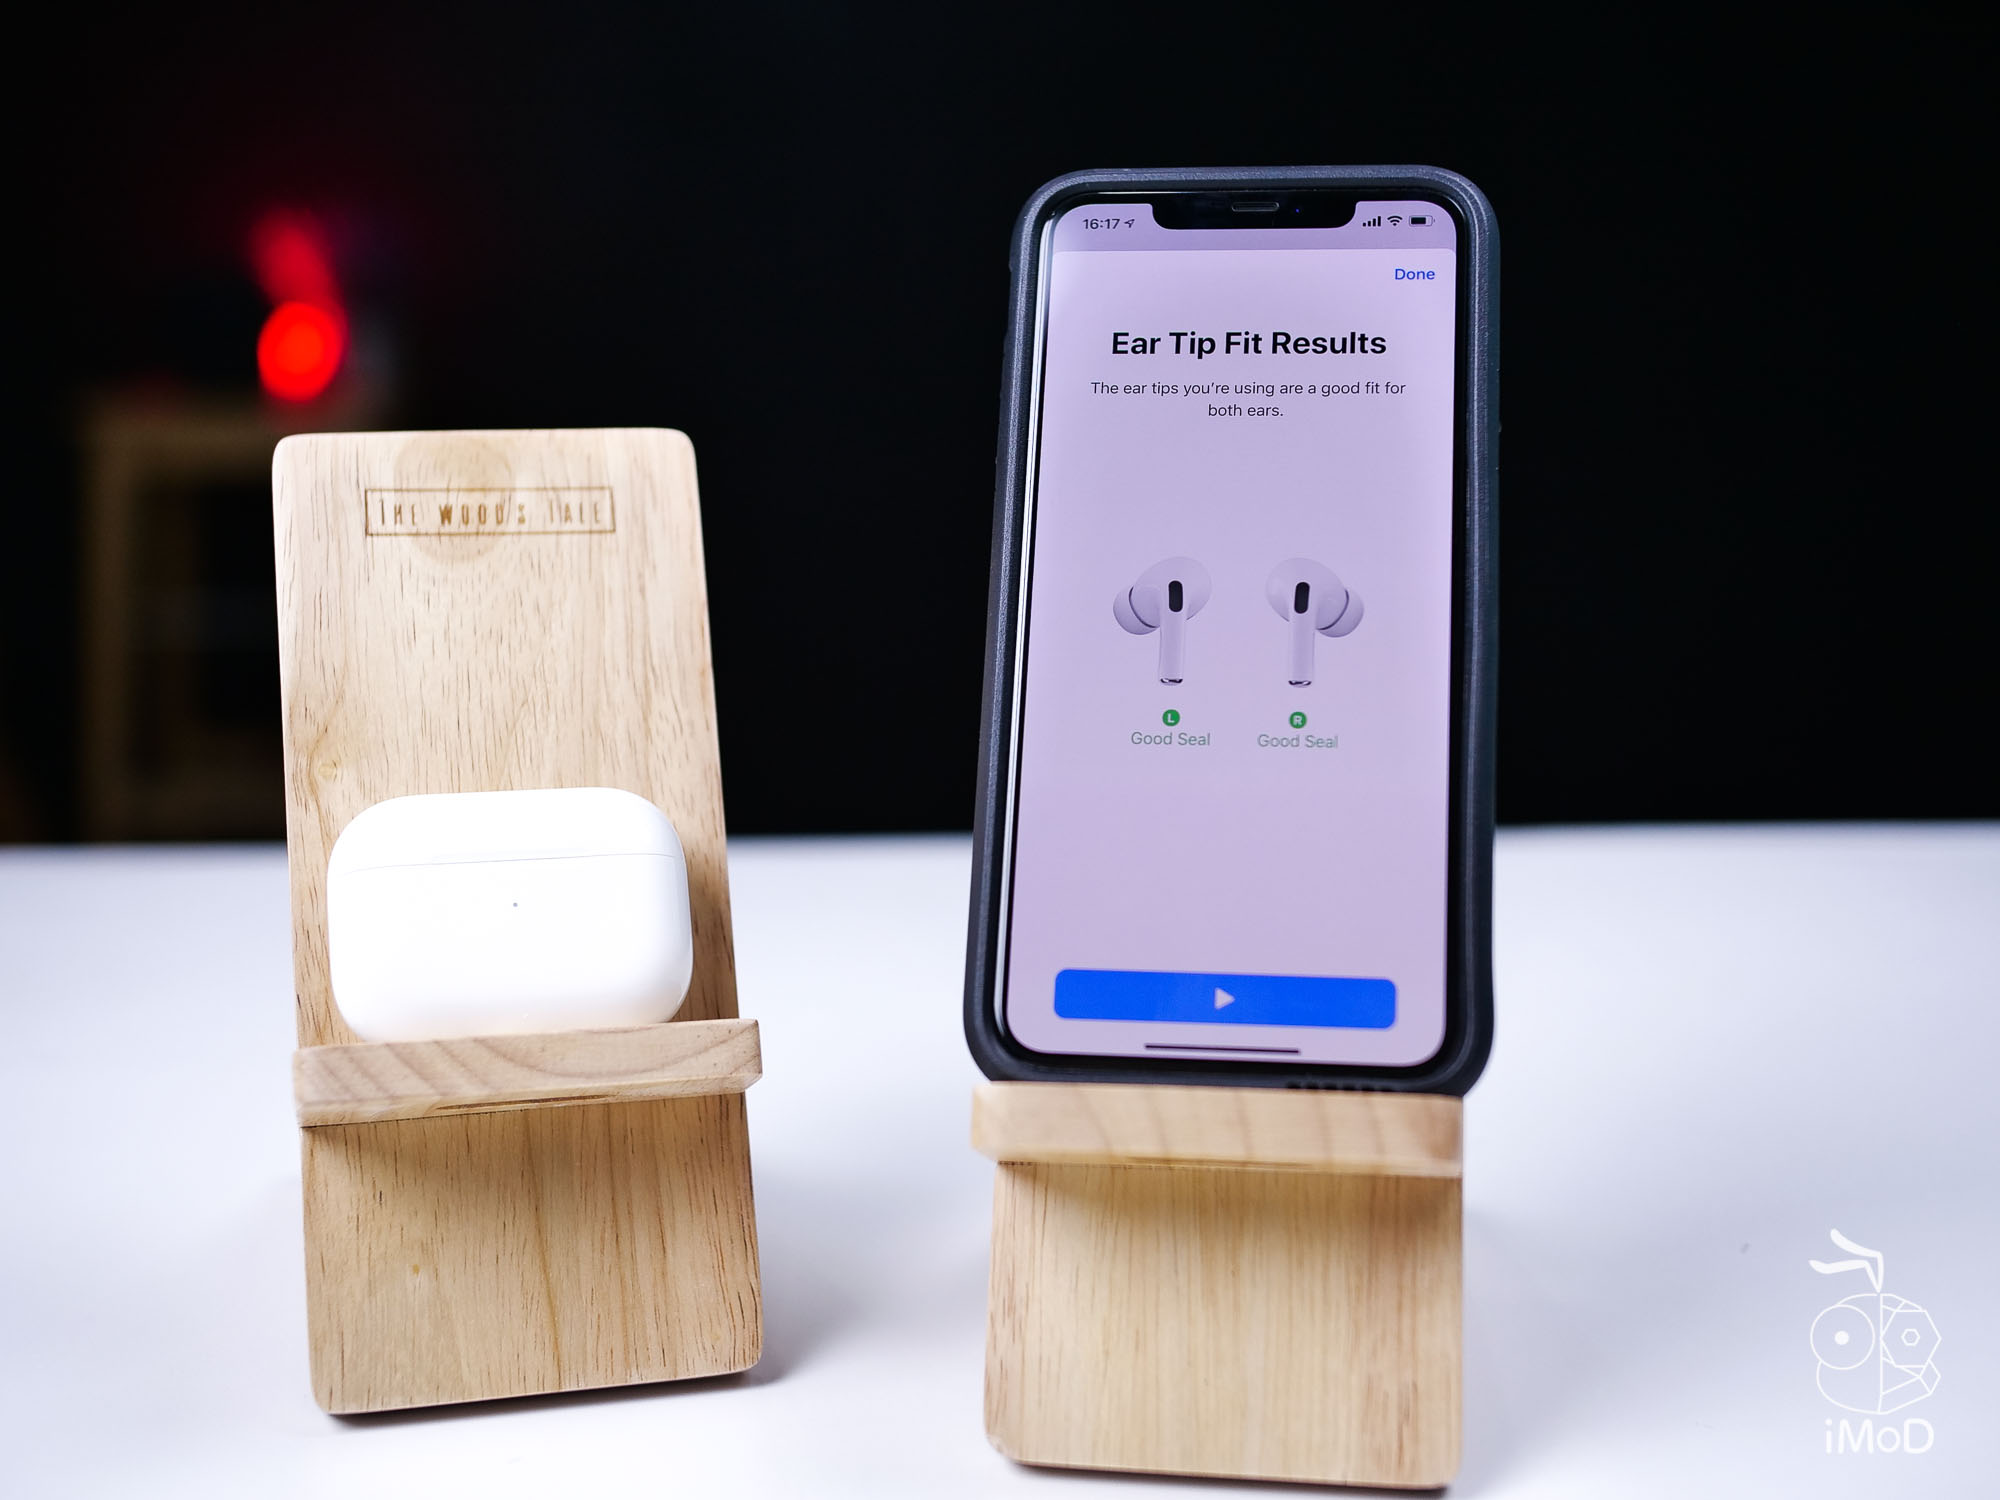 Airpods Pro Remove Ear Tip Fit Test 1014500